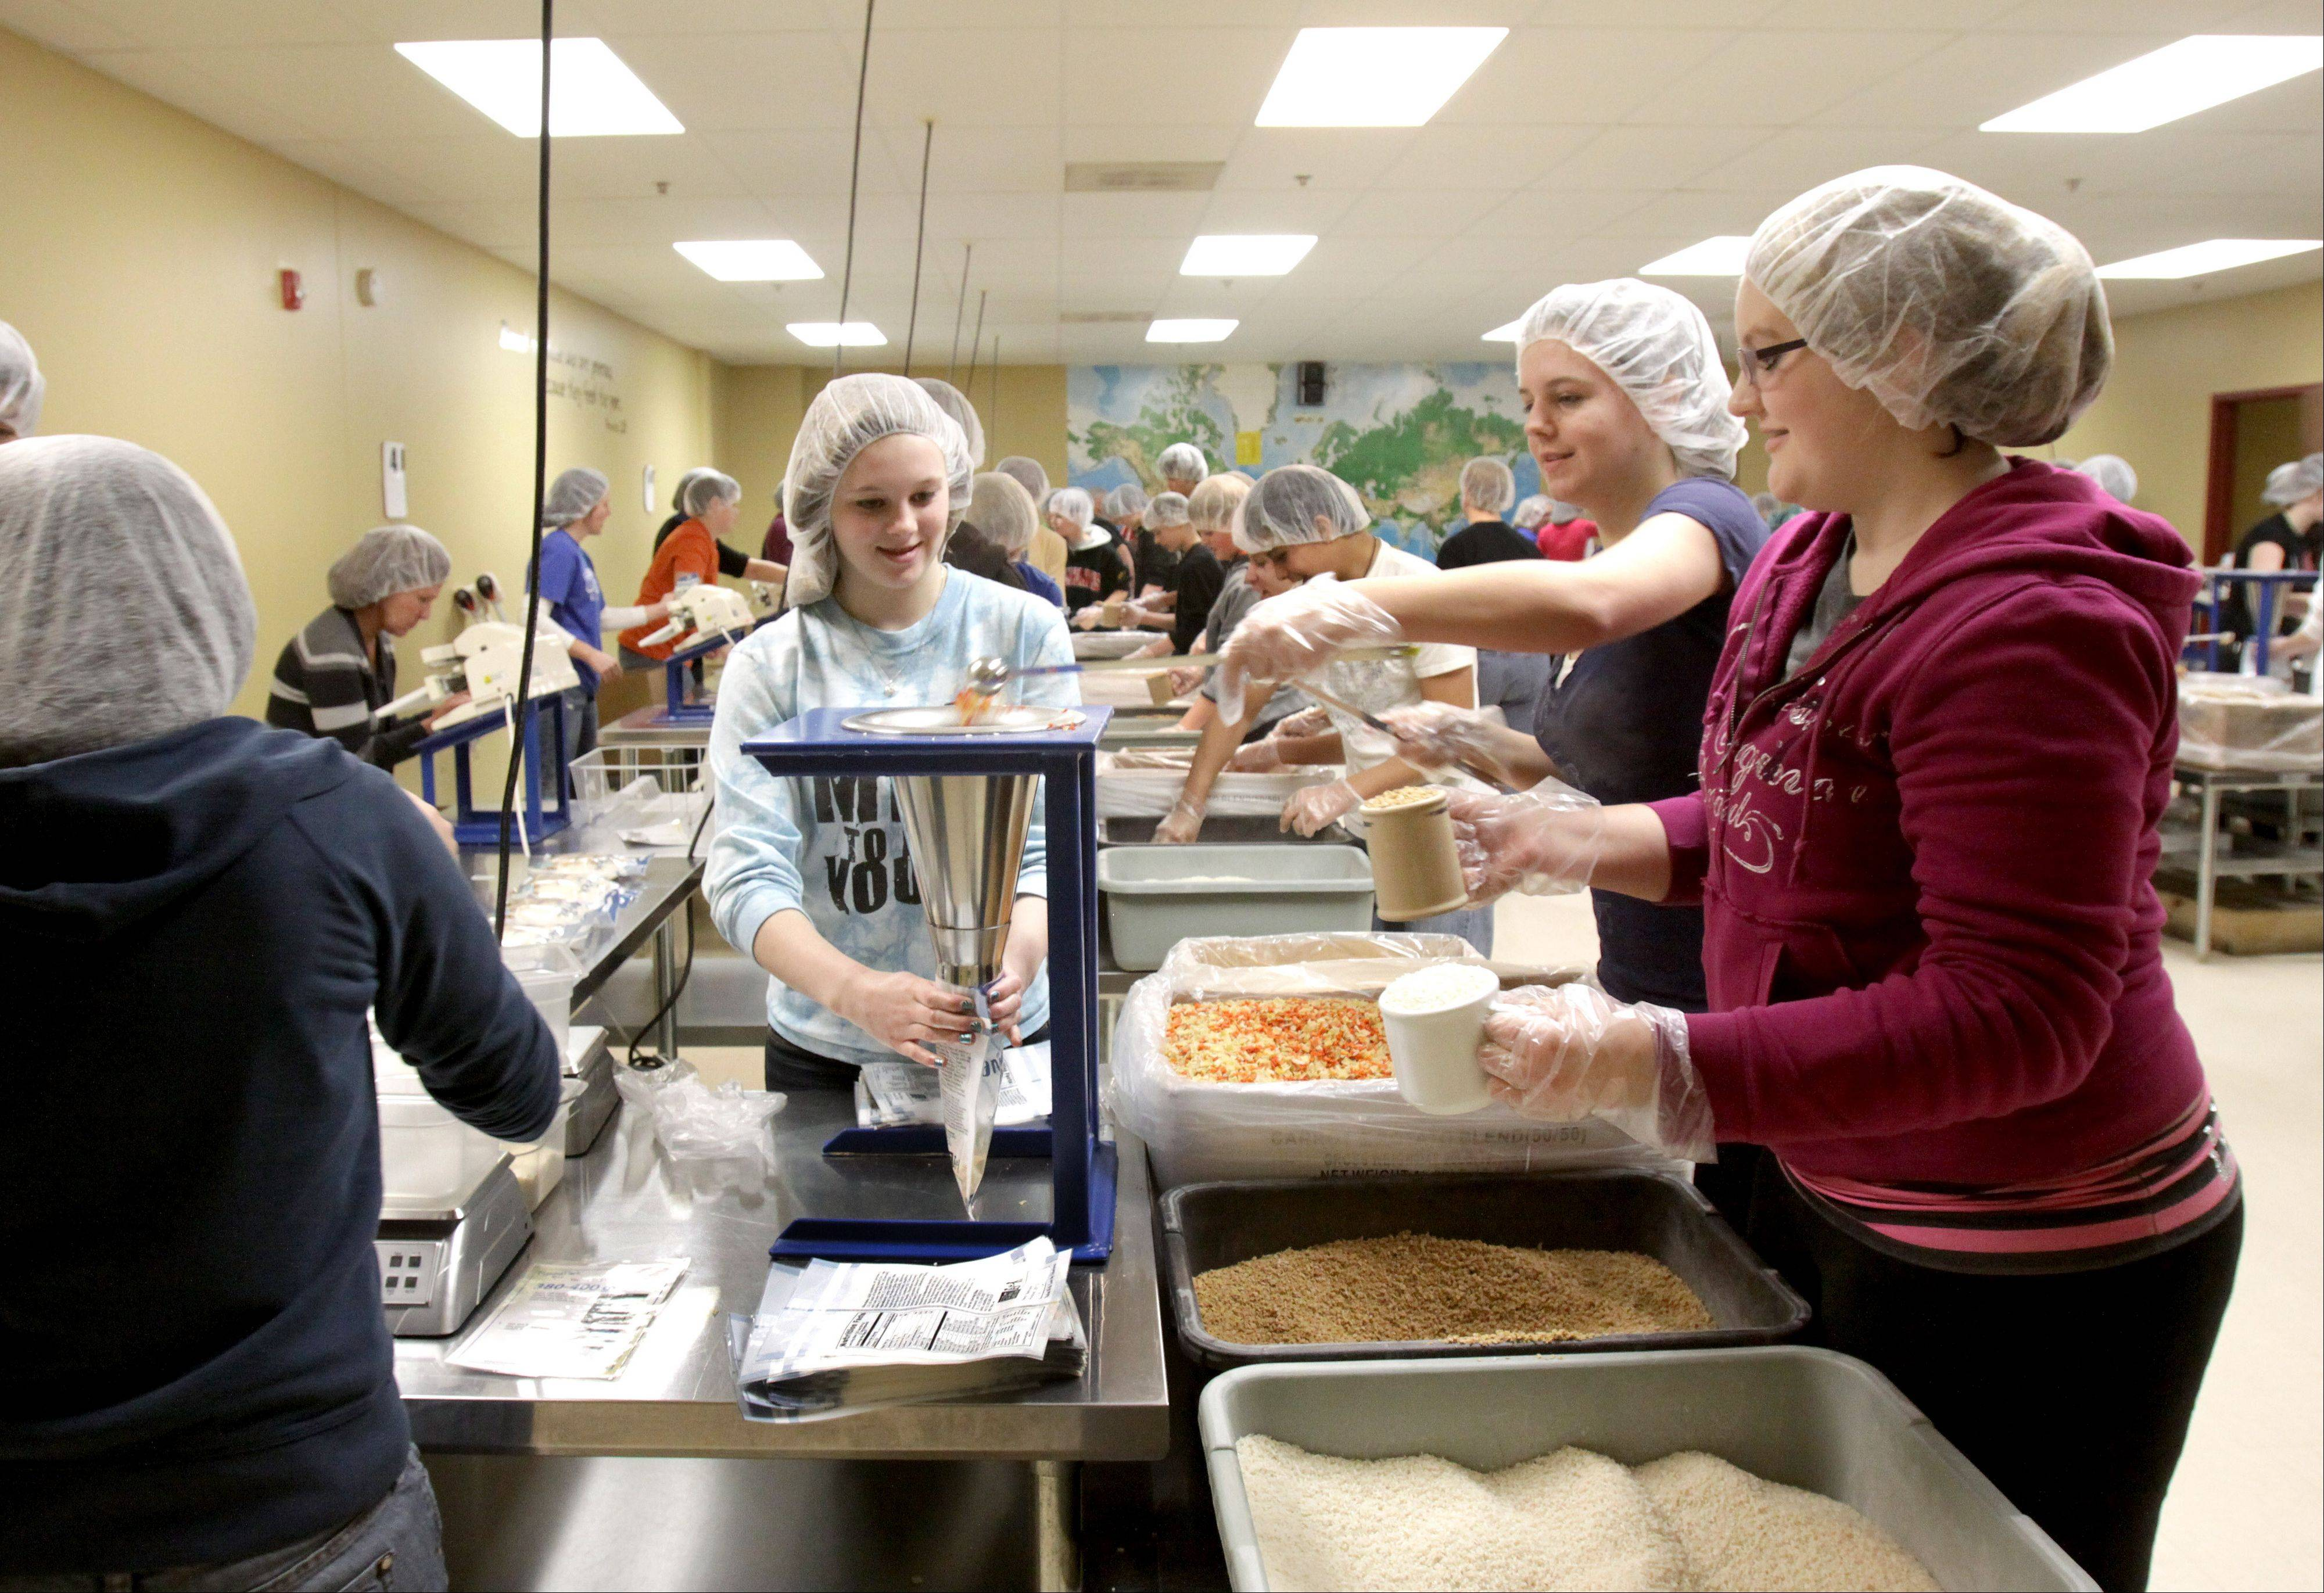 Kids from Burlington Central Middle School work at filling meal packets at Feed My Starving Children in Aurora.